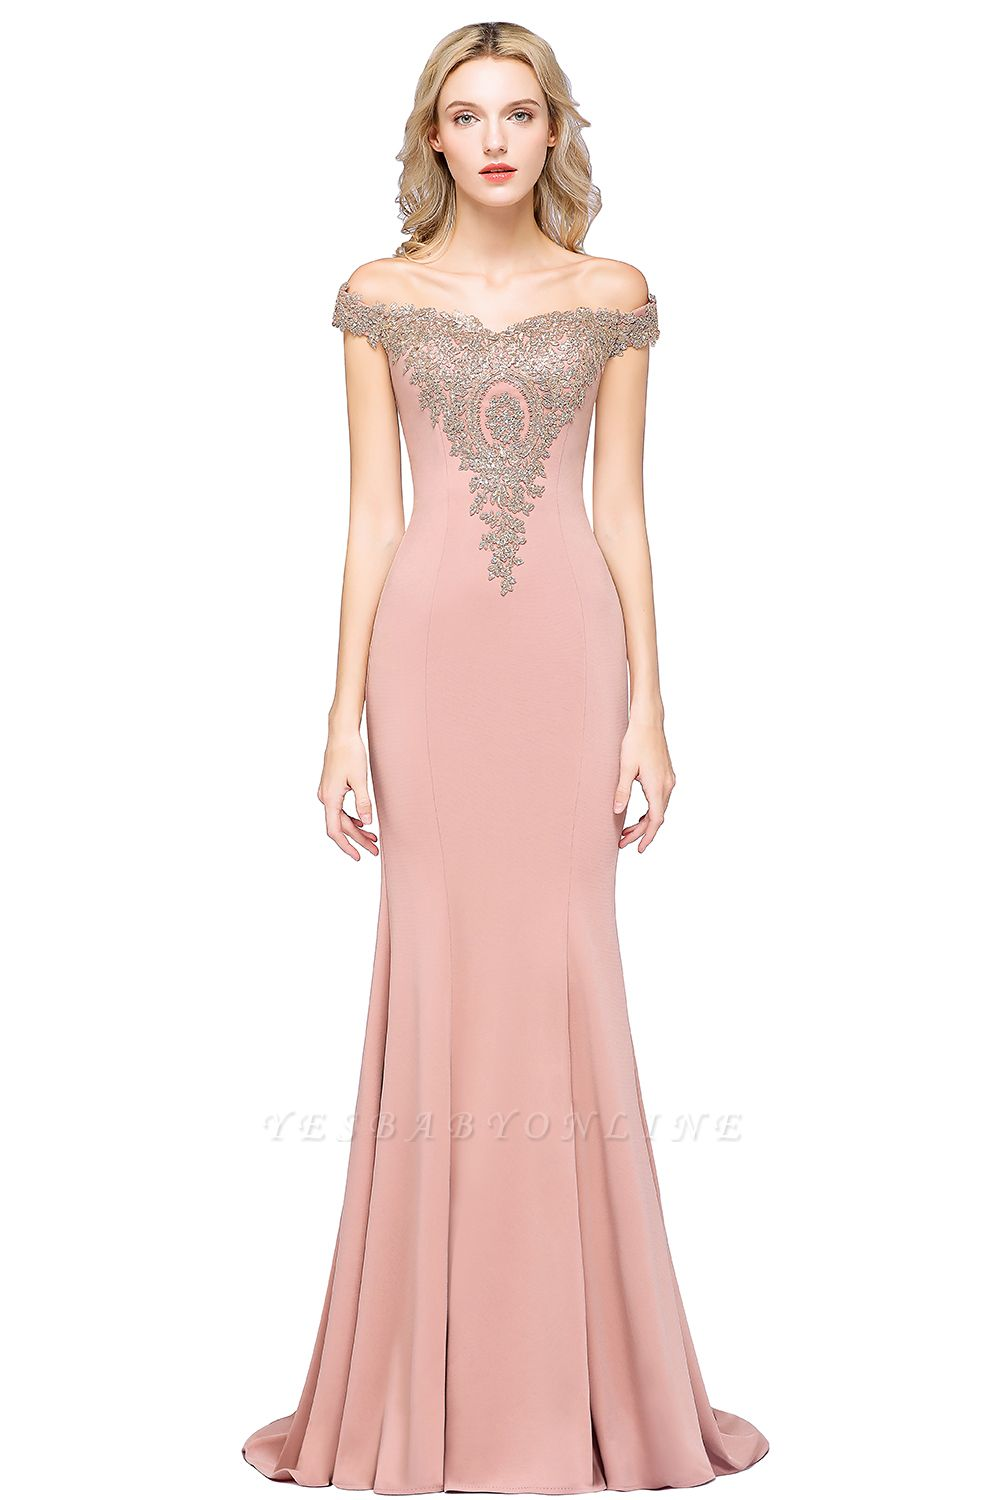 Simple Off the Shoulder Appliques Fitted Floor Length Evening Gown